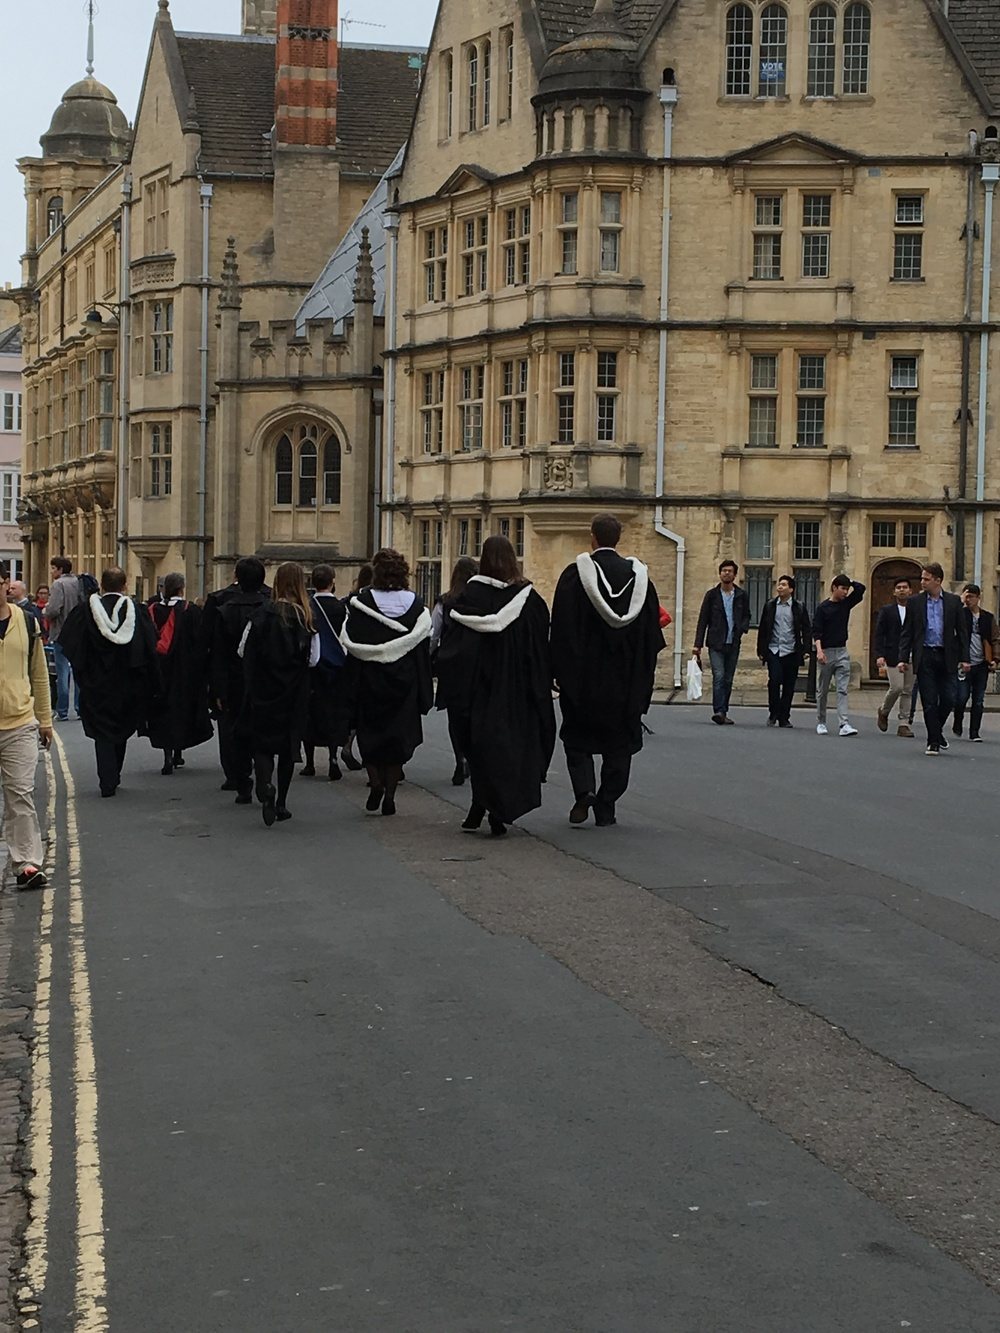 A group of students led by their faculty member make their way in full regalia on foot to their graduation ceremony.